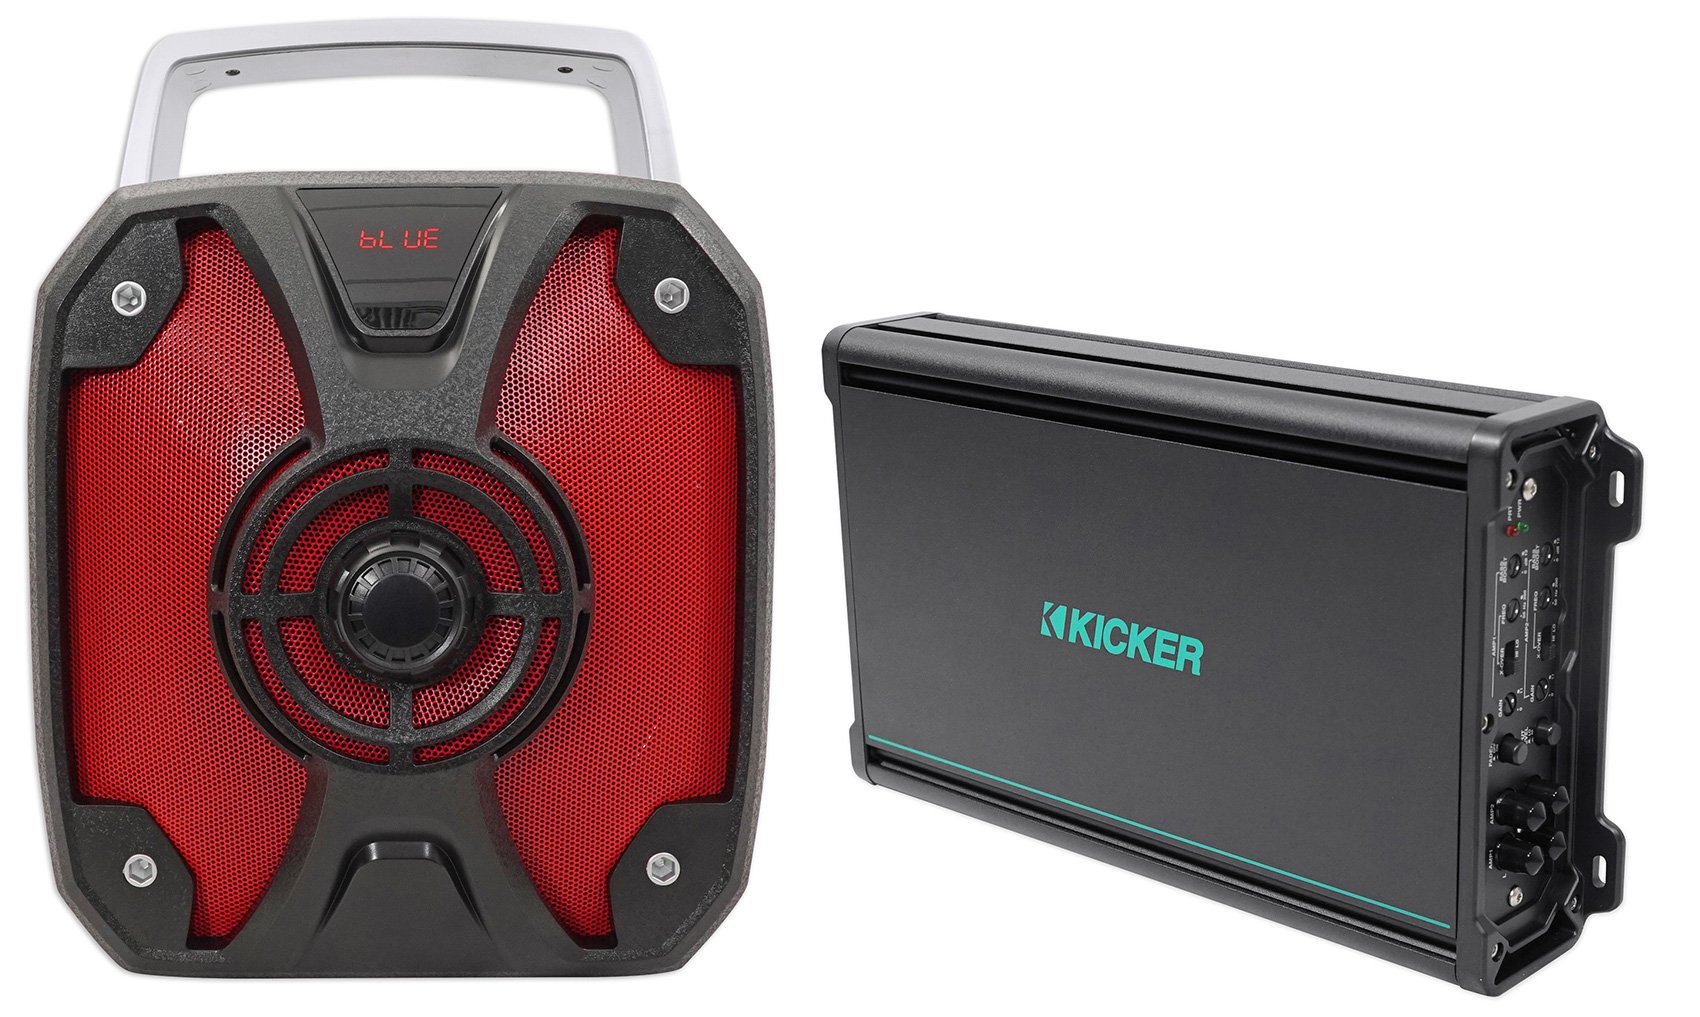 KICKER 45KMA3004 300w 4-Channel Marine Amplifier 2-ohm Boat Amp Class D+RockBox